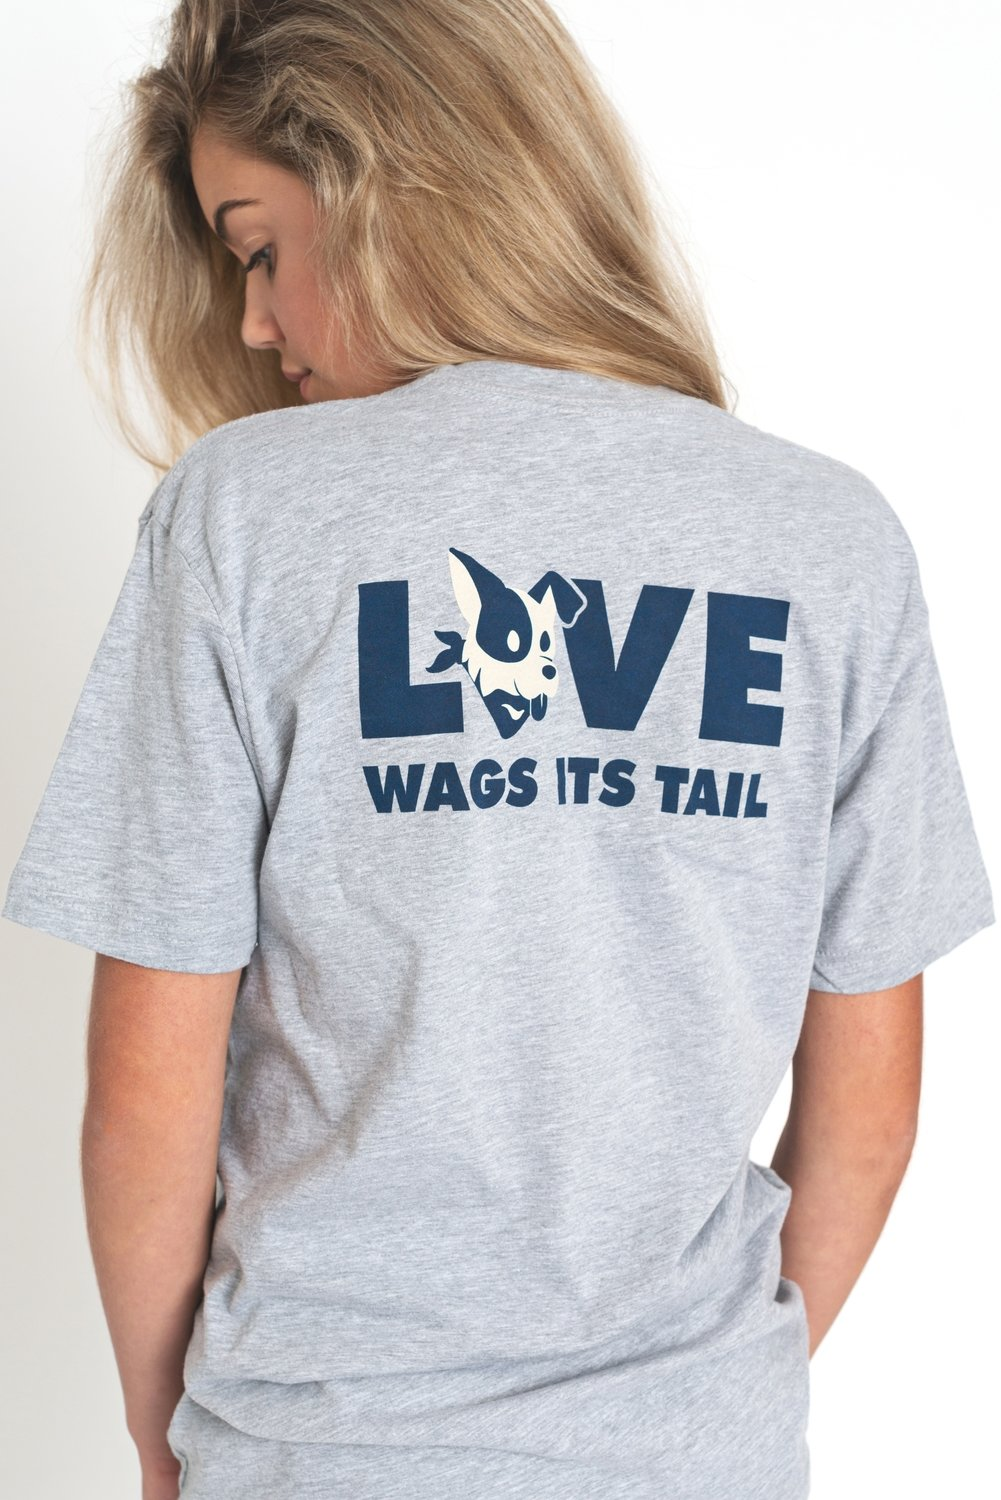 LOVE Wags its Tail Crew - Grey - The Stray Stitch